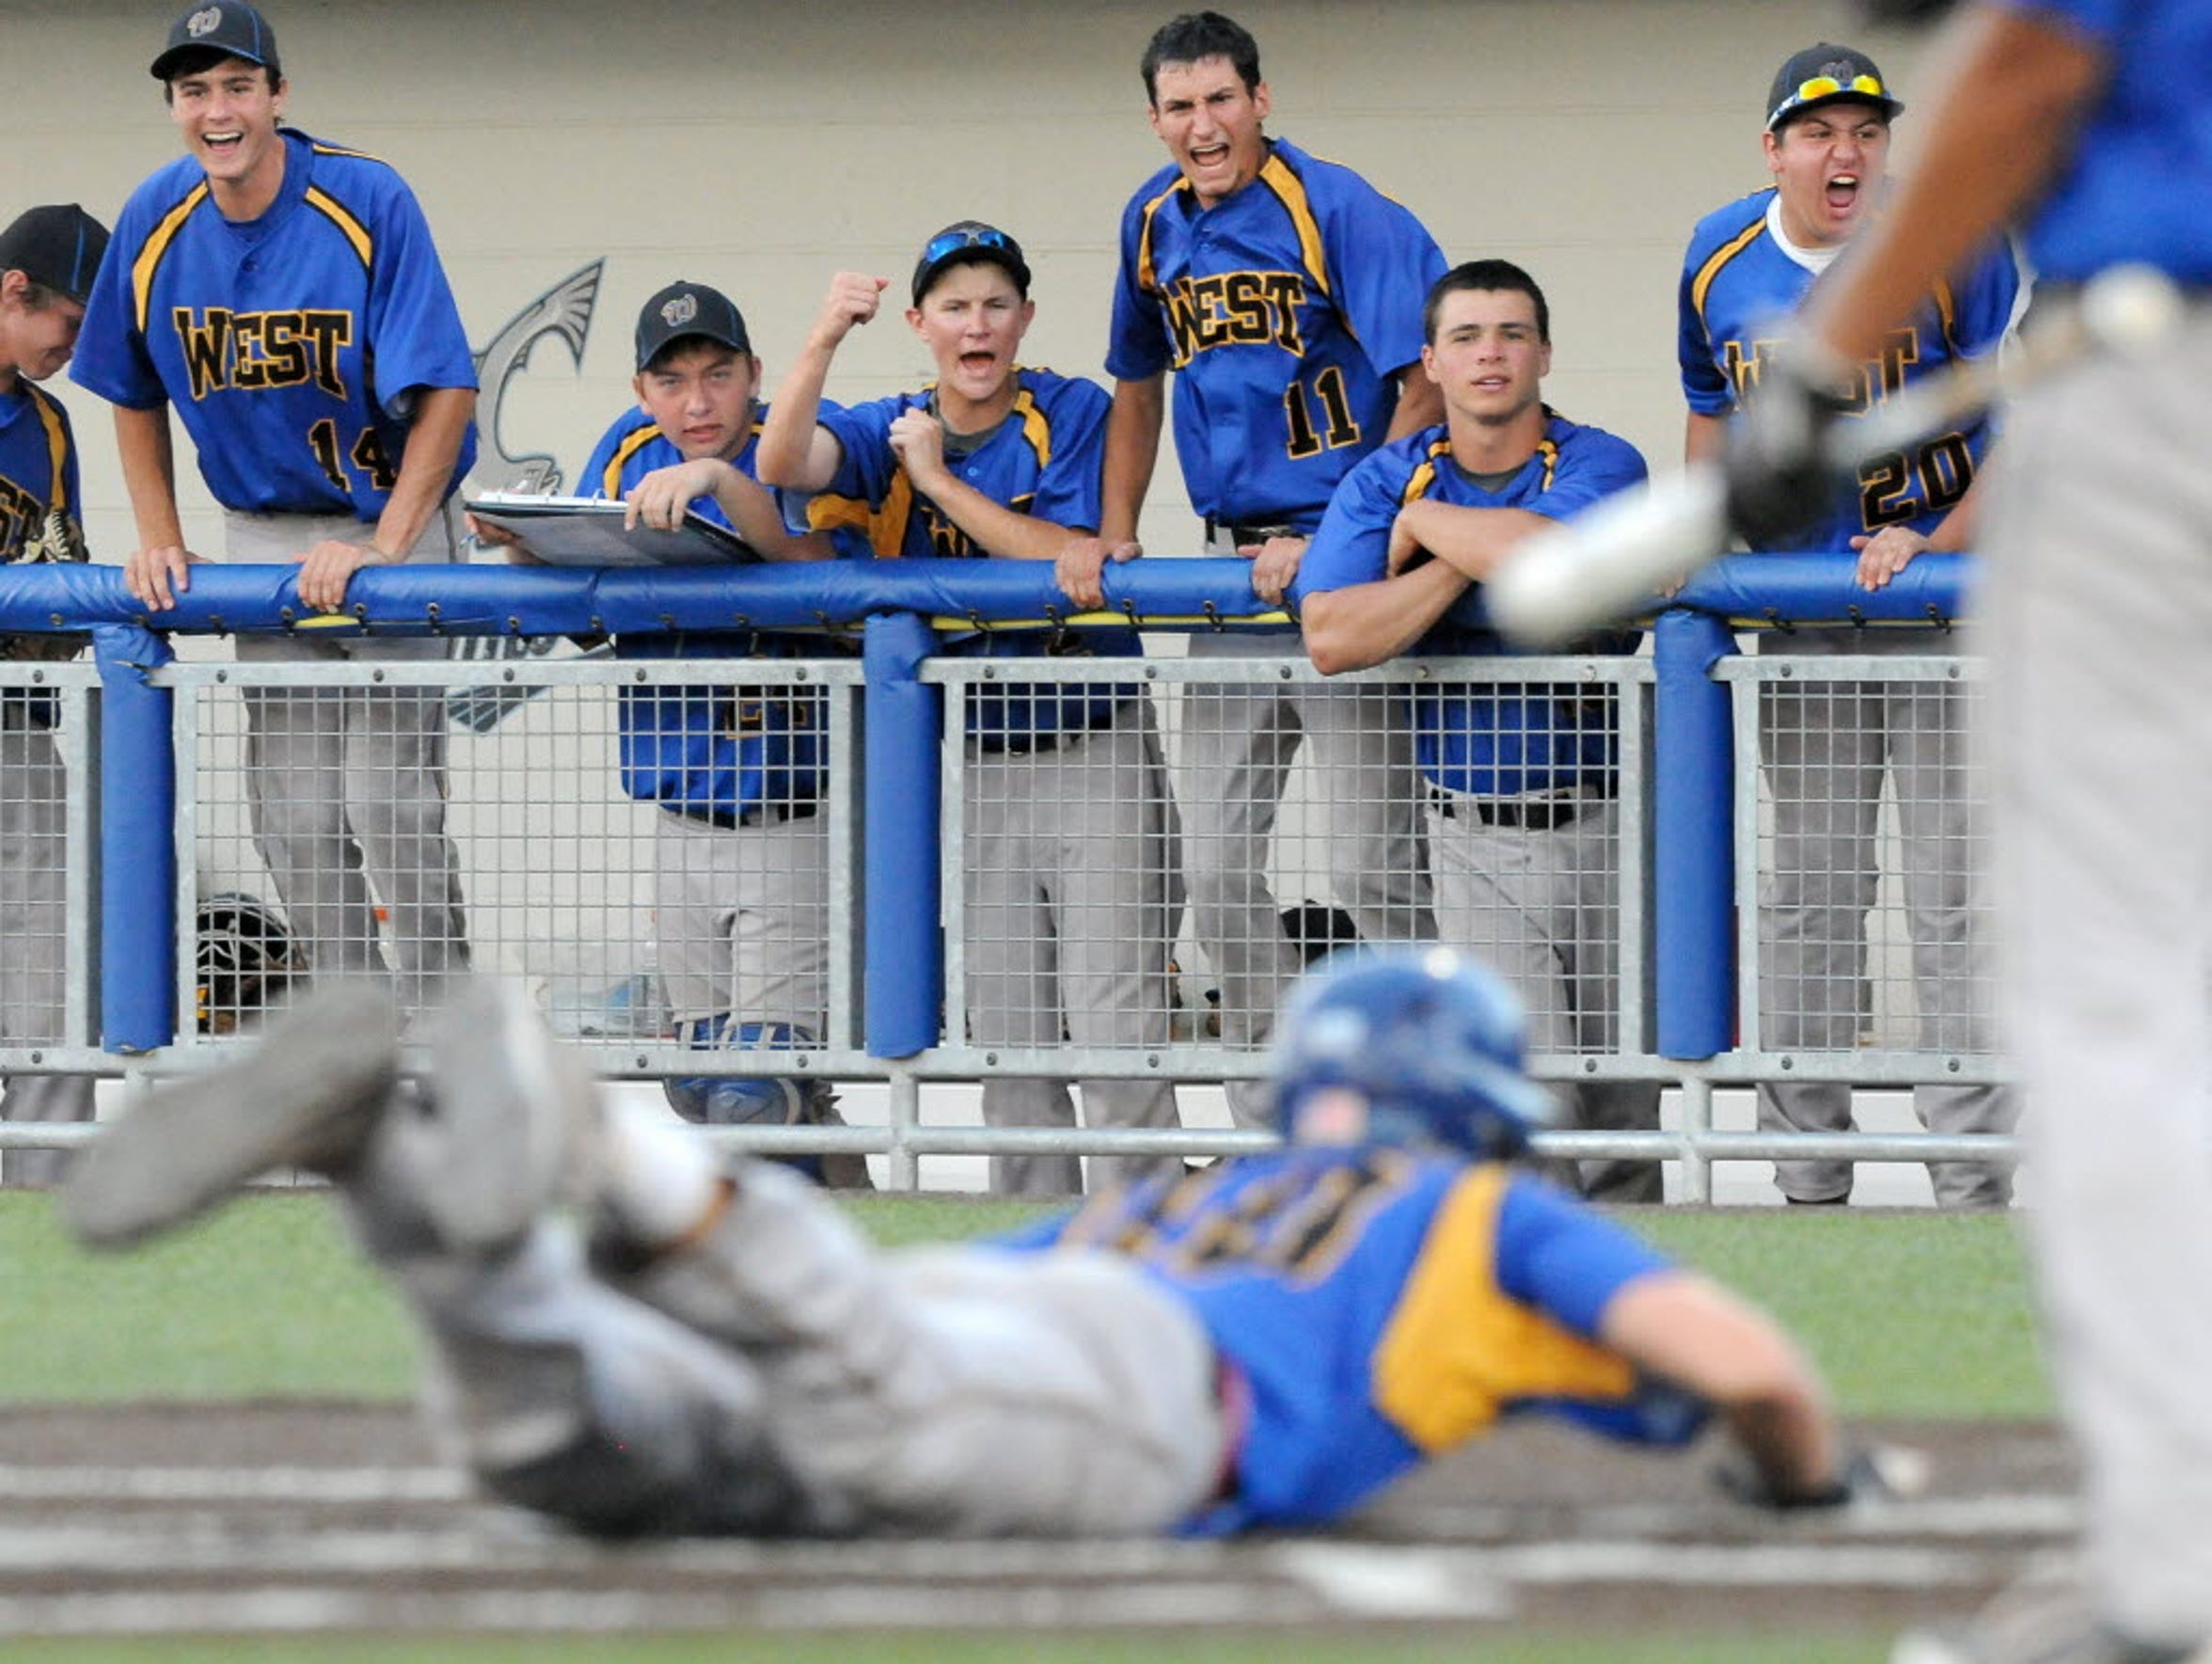 New Berlin West's dugout reacts to Darrin Sowinski